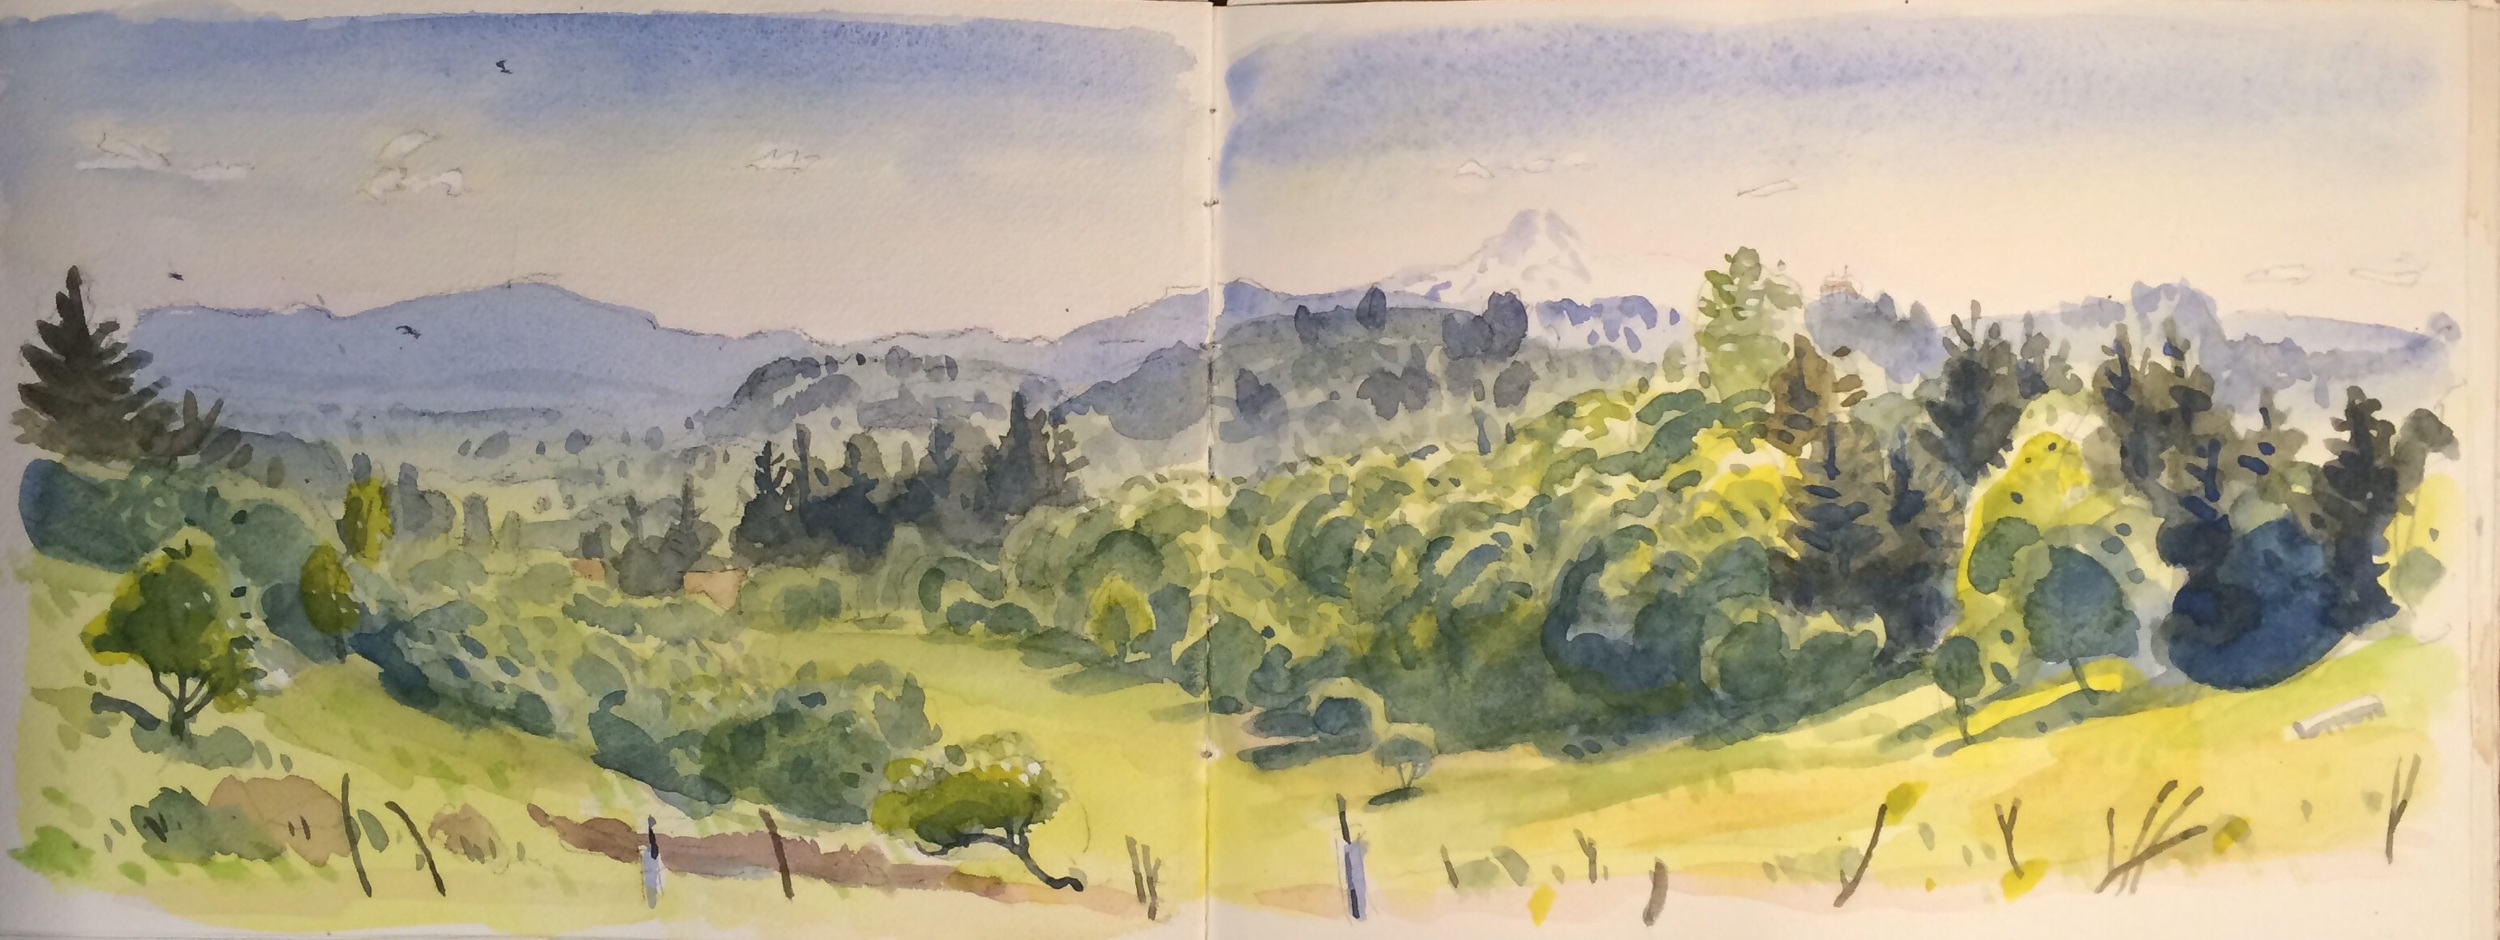 Gresham Butte, Larch Mountain, Mt Hood from the watercolor notebook, The Sesame Street Book of Shapes